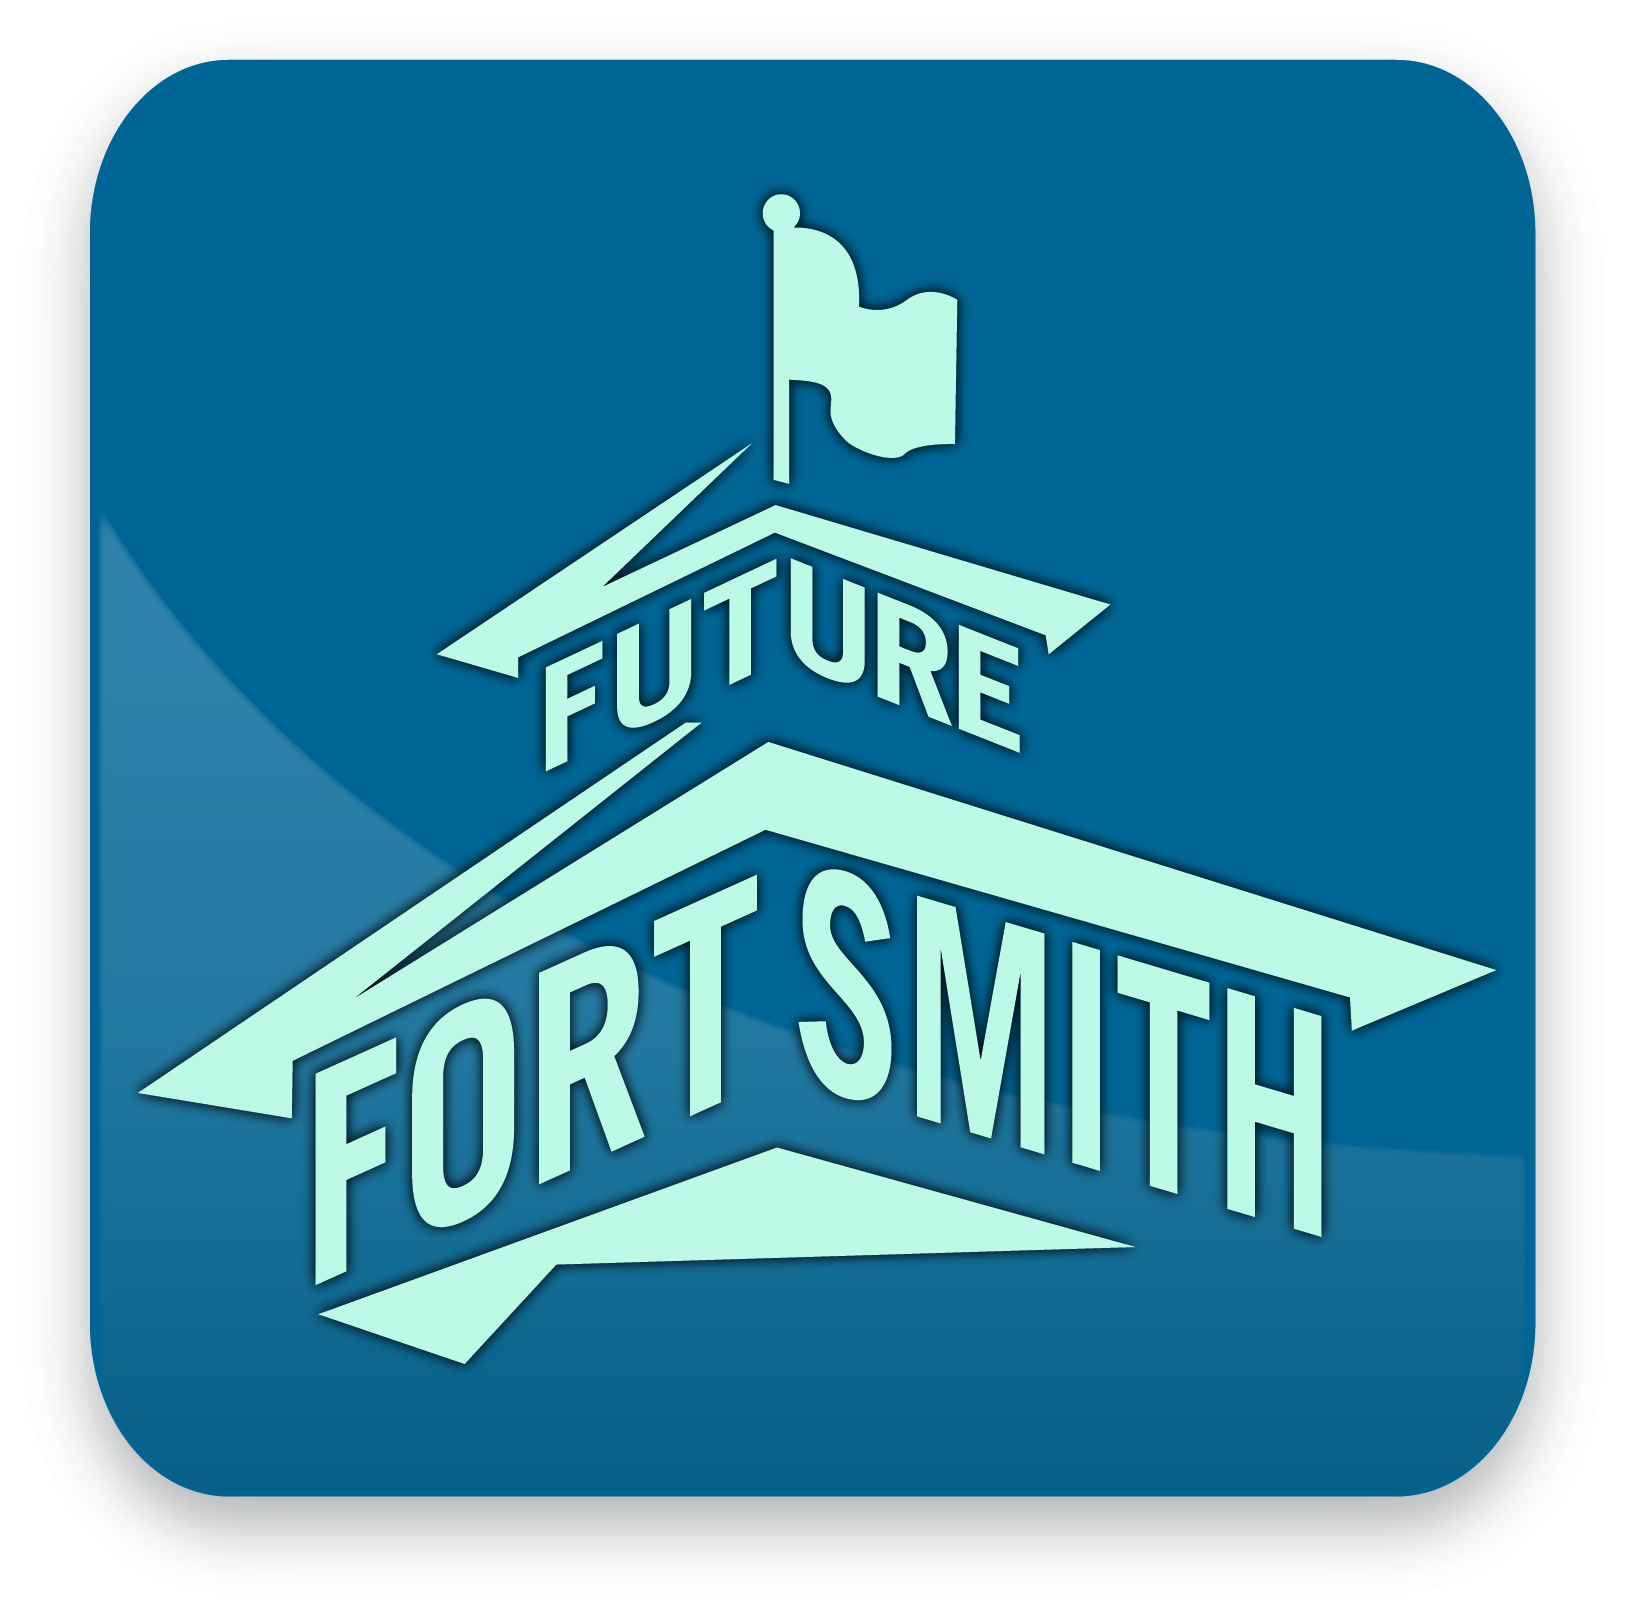 Future Fort Smith